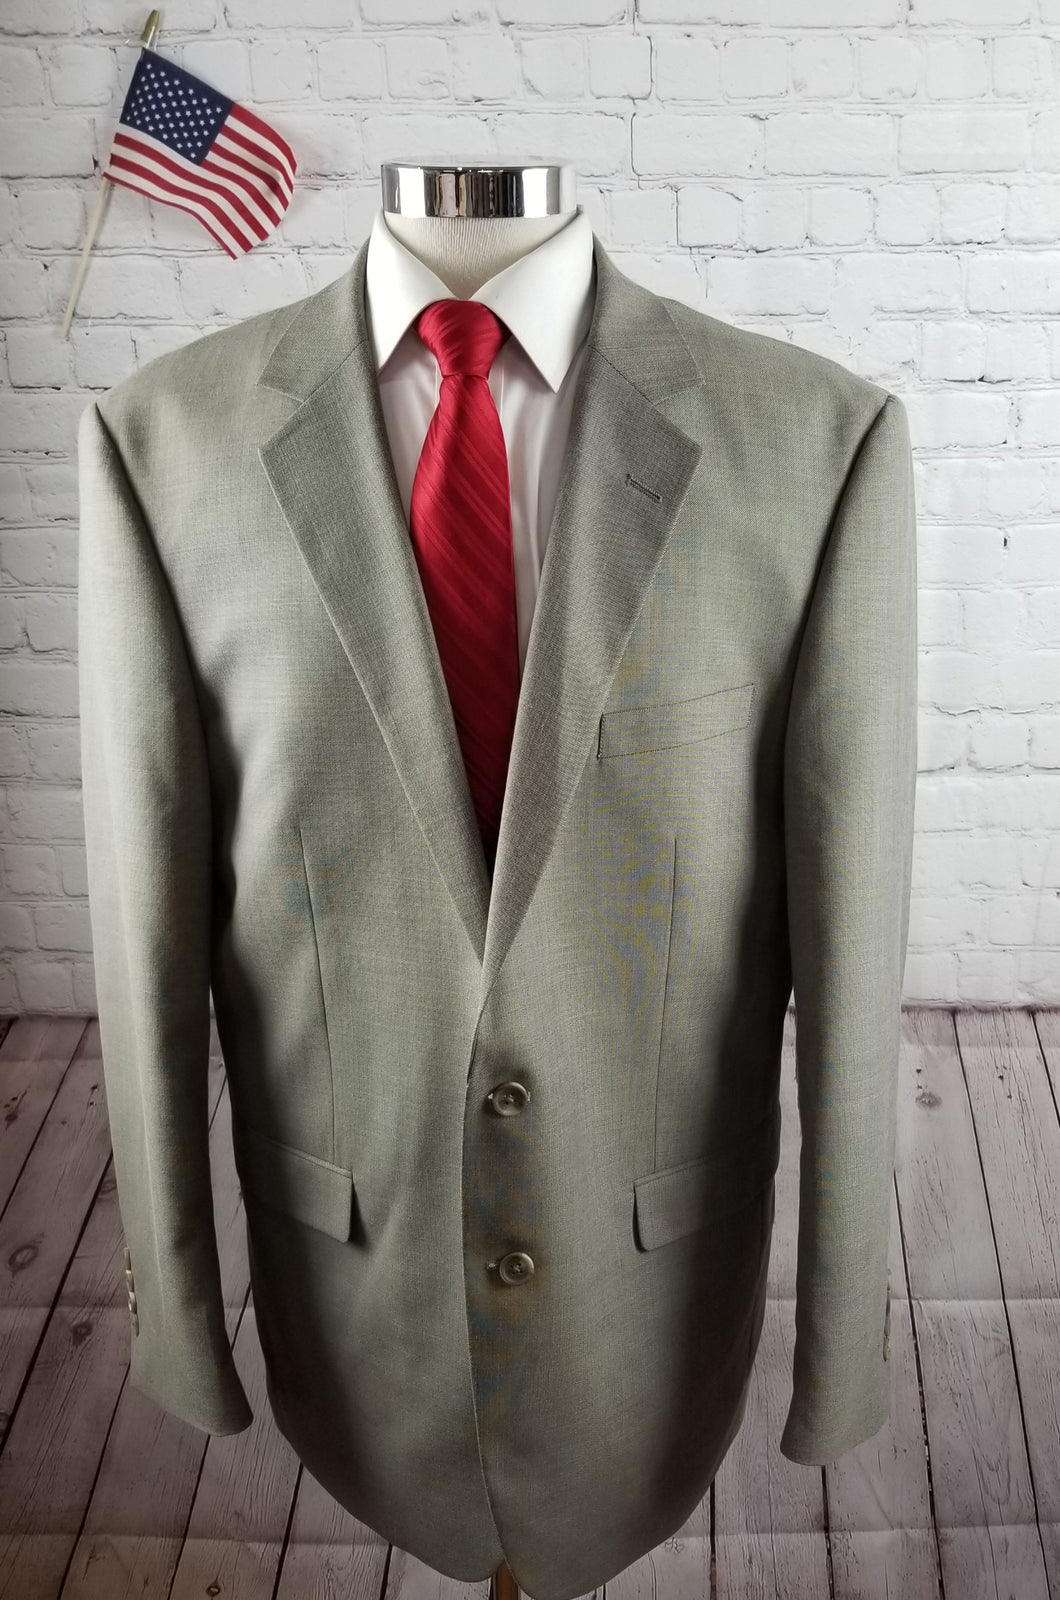 Van Huesen Gray Textured Suit 46L Pants 38X32 $329